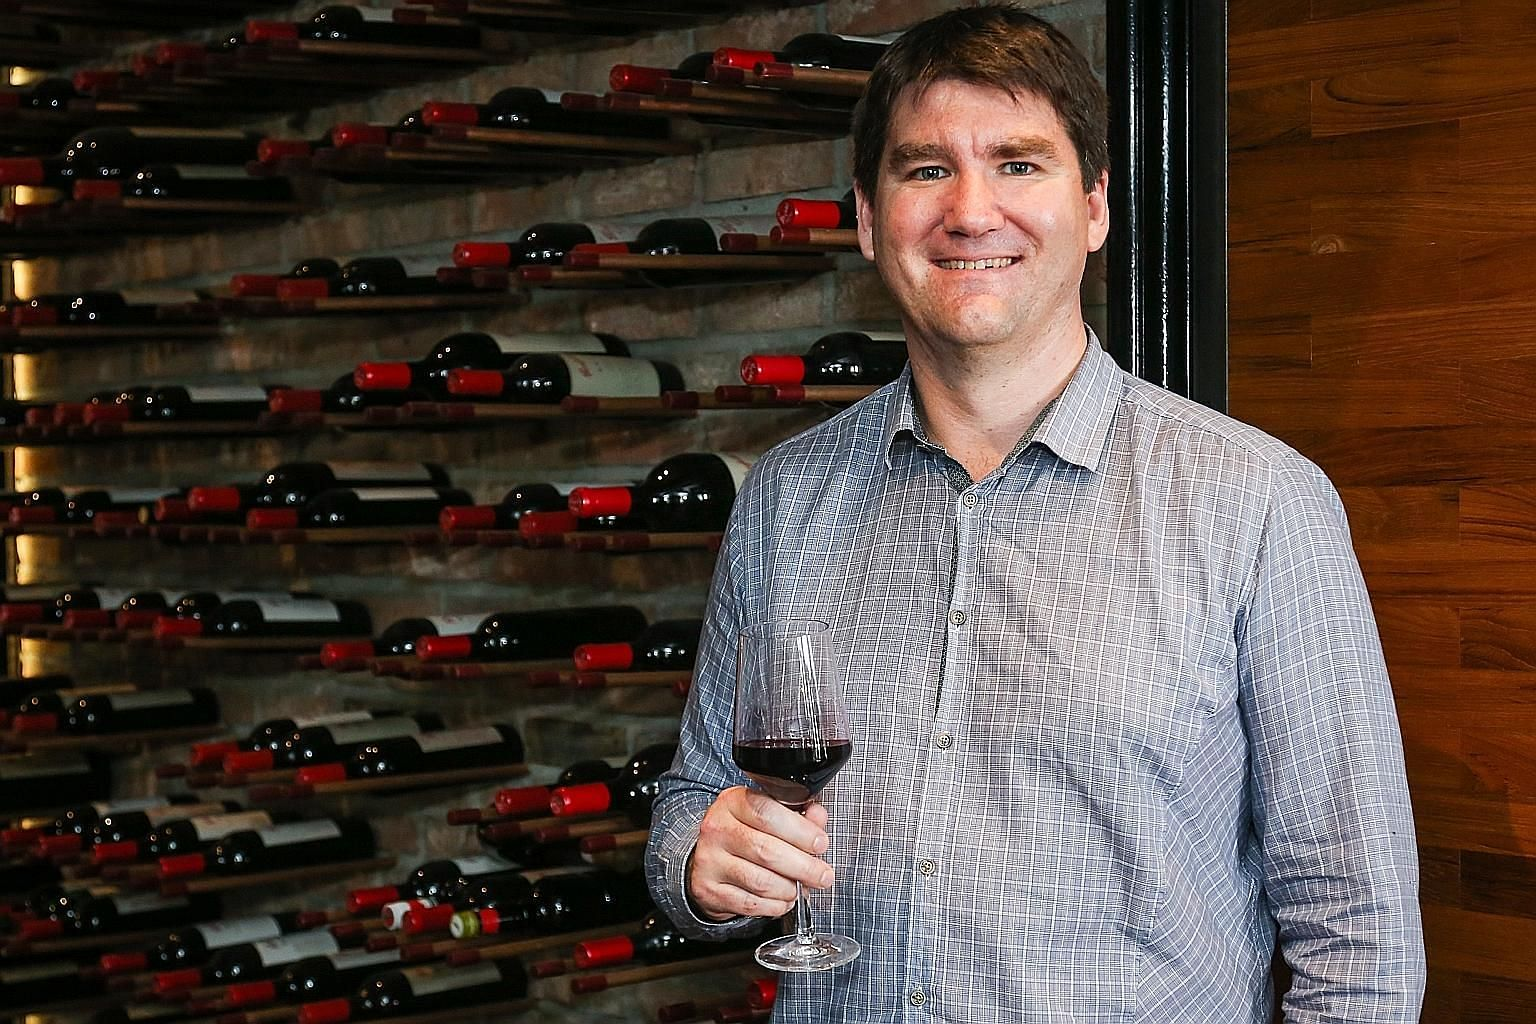 Penfolds wine-maker Adam Clay with a glass of shiraz from the Max's label of wines, targeted at young drinkers.